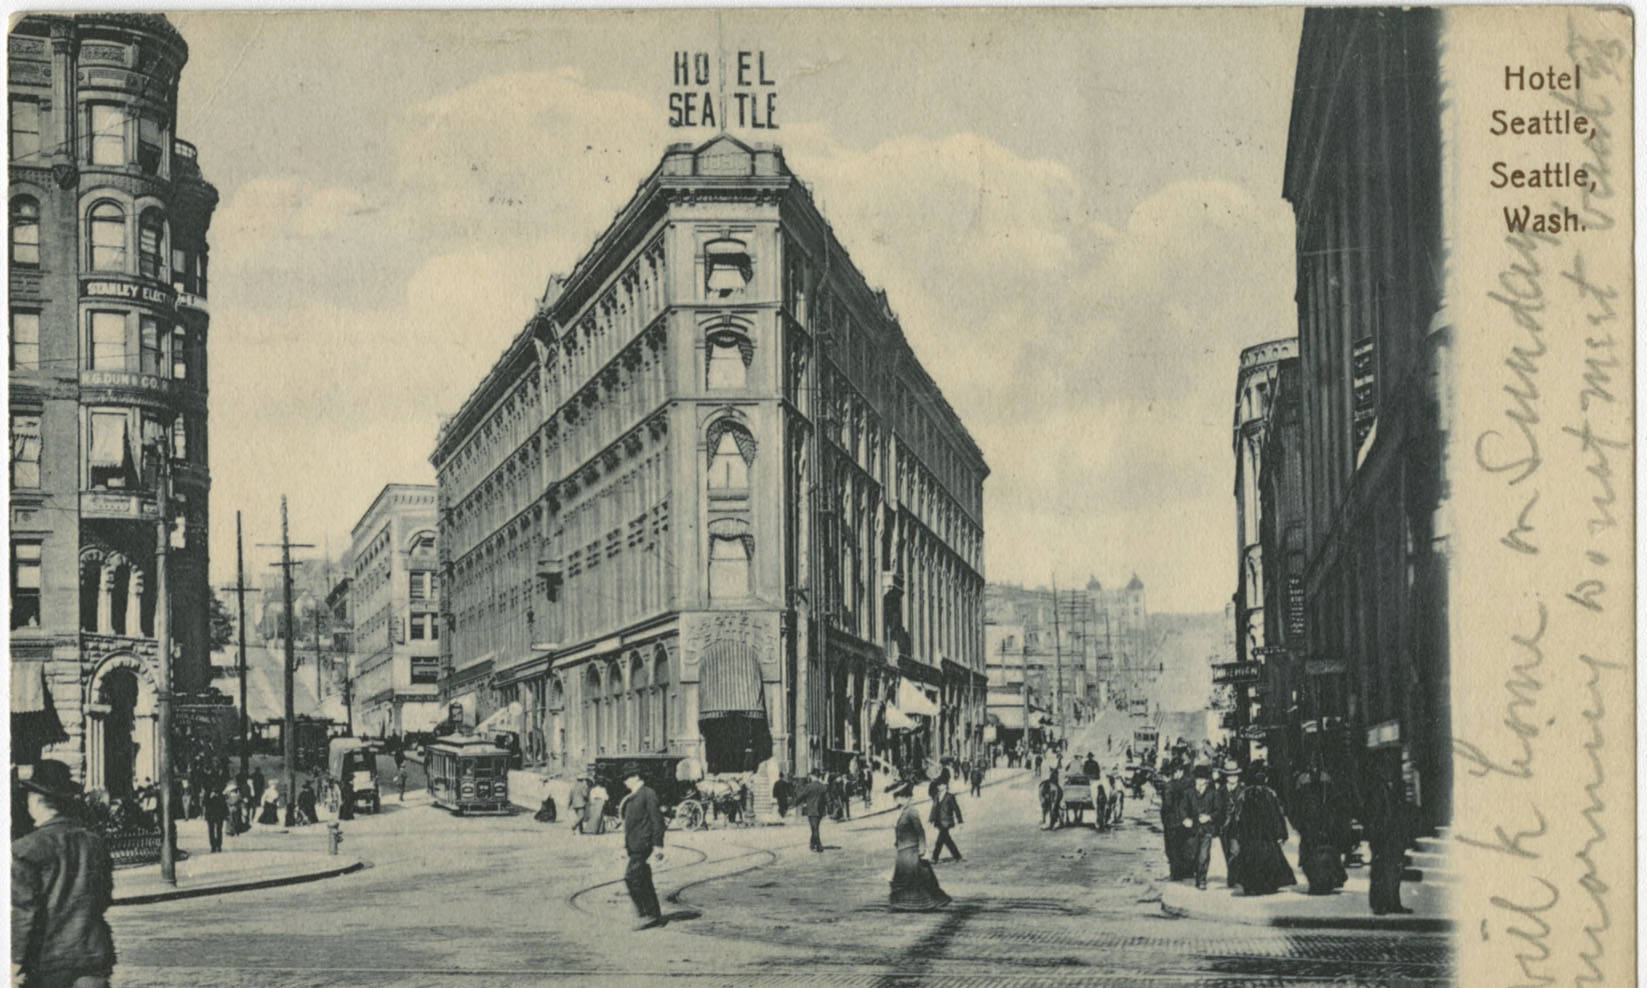 Hotel Seattle at James St. and Yesler Way, March 1, 1907